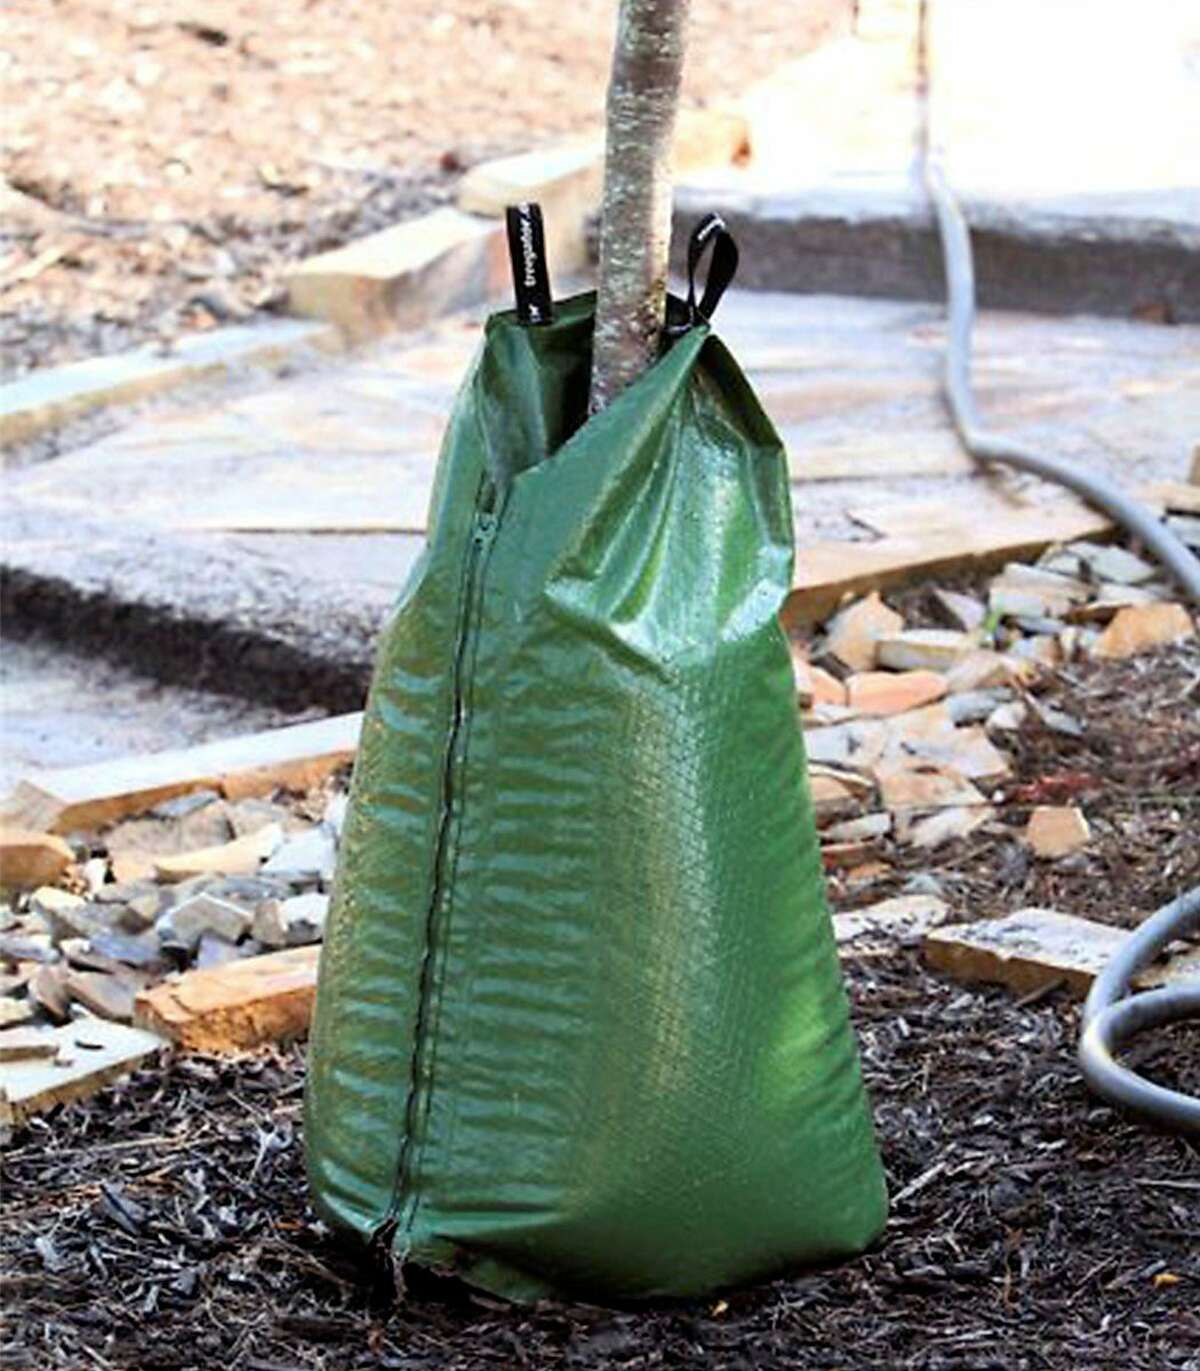 Treegator® Slow Release Watering Bag is a slow release watering system for newly planted trees. The Treegator® Original slowly and evenly delivers a high volume of water directly to the root system of a newly planted tree or shrub with no run-off or evaporation.